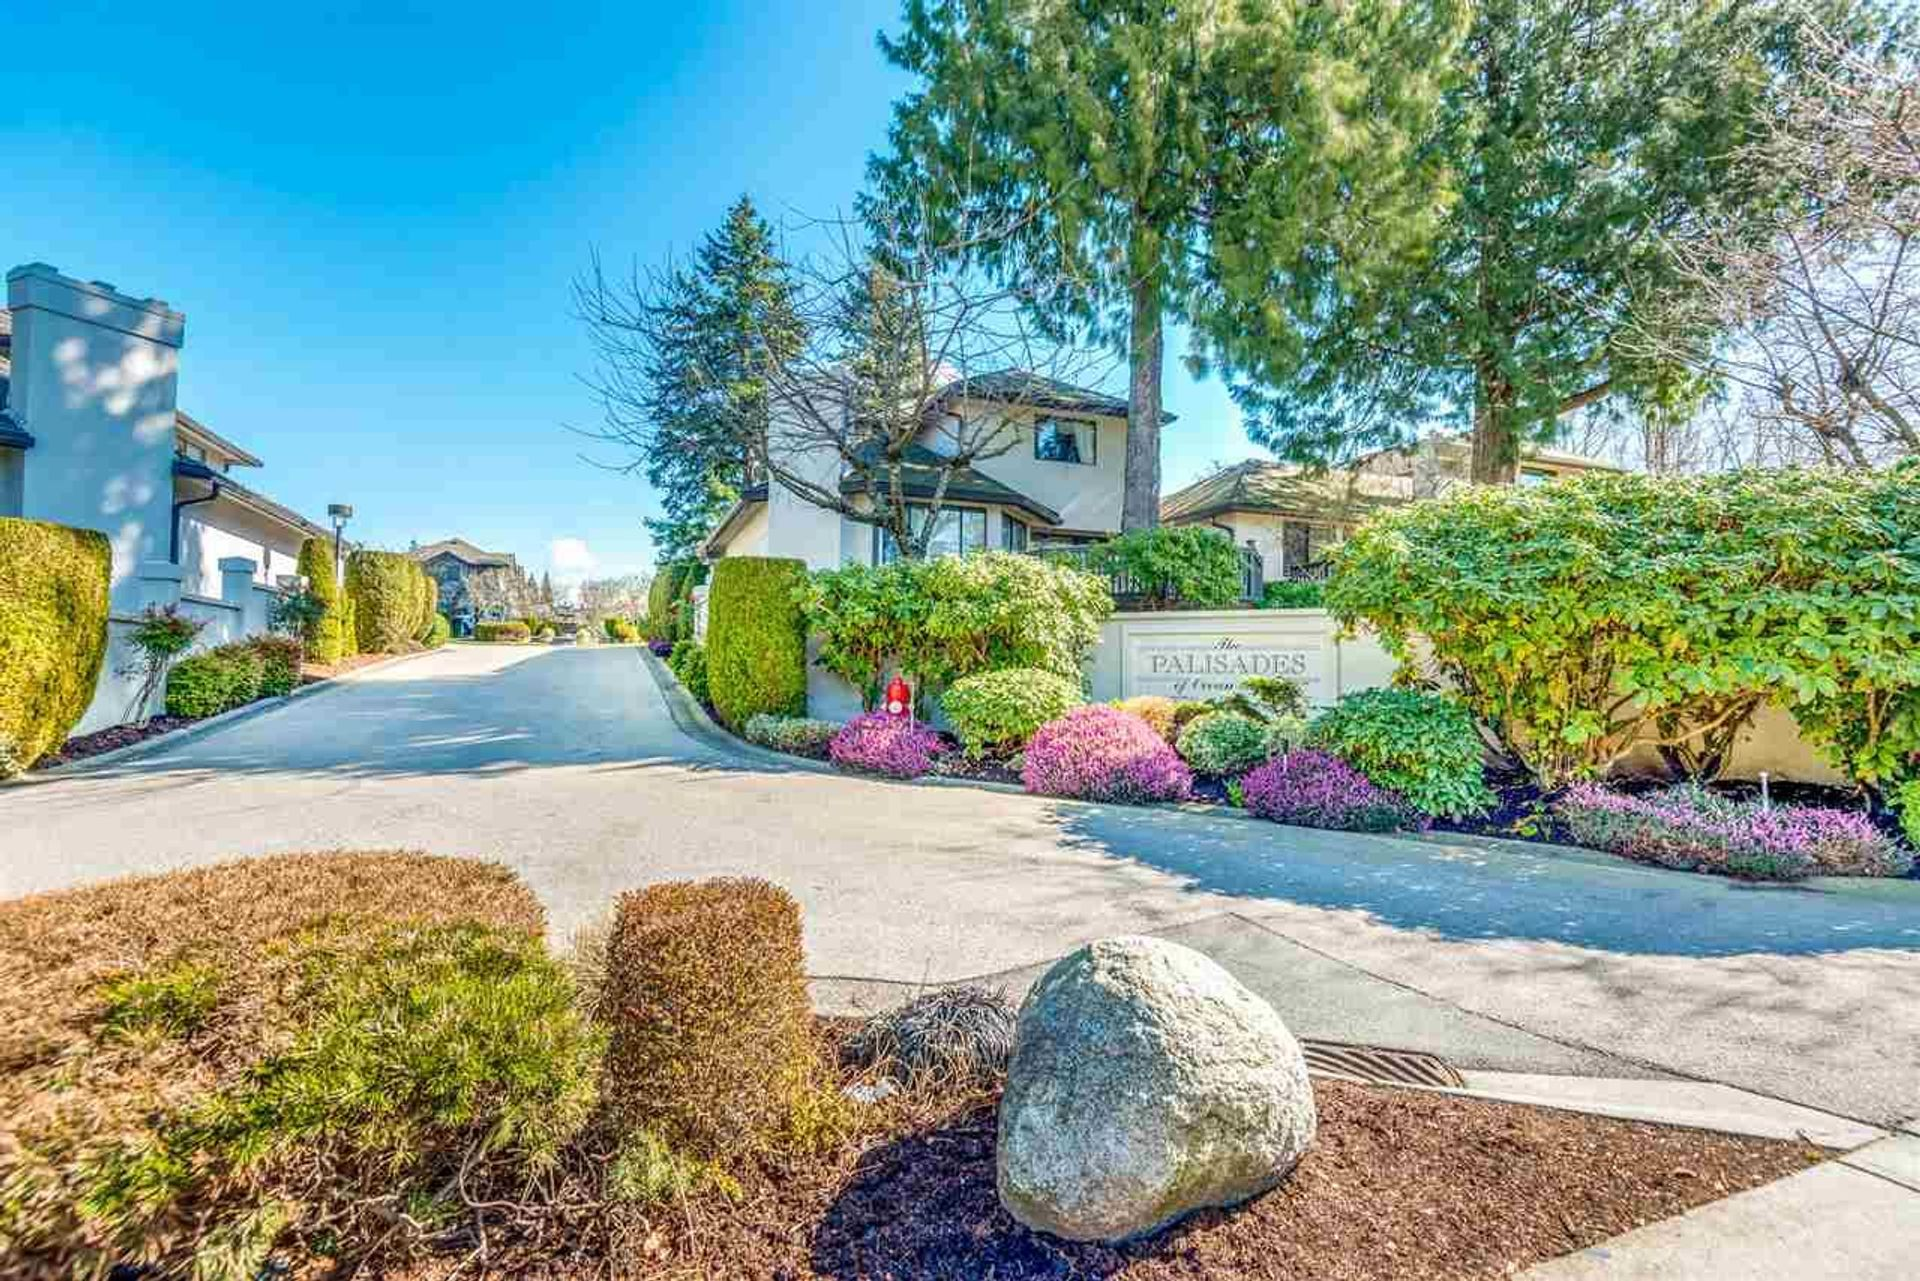 1770-128-street-crescent-bch-ocean-pk-south-surrey-white-rock-03 at 138 - 1770 128 Street, Crescent Bch Ocean Pk., South Surrey White Rock